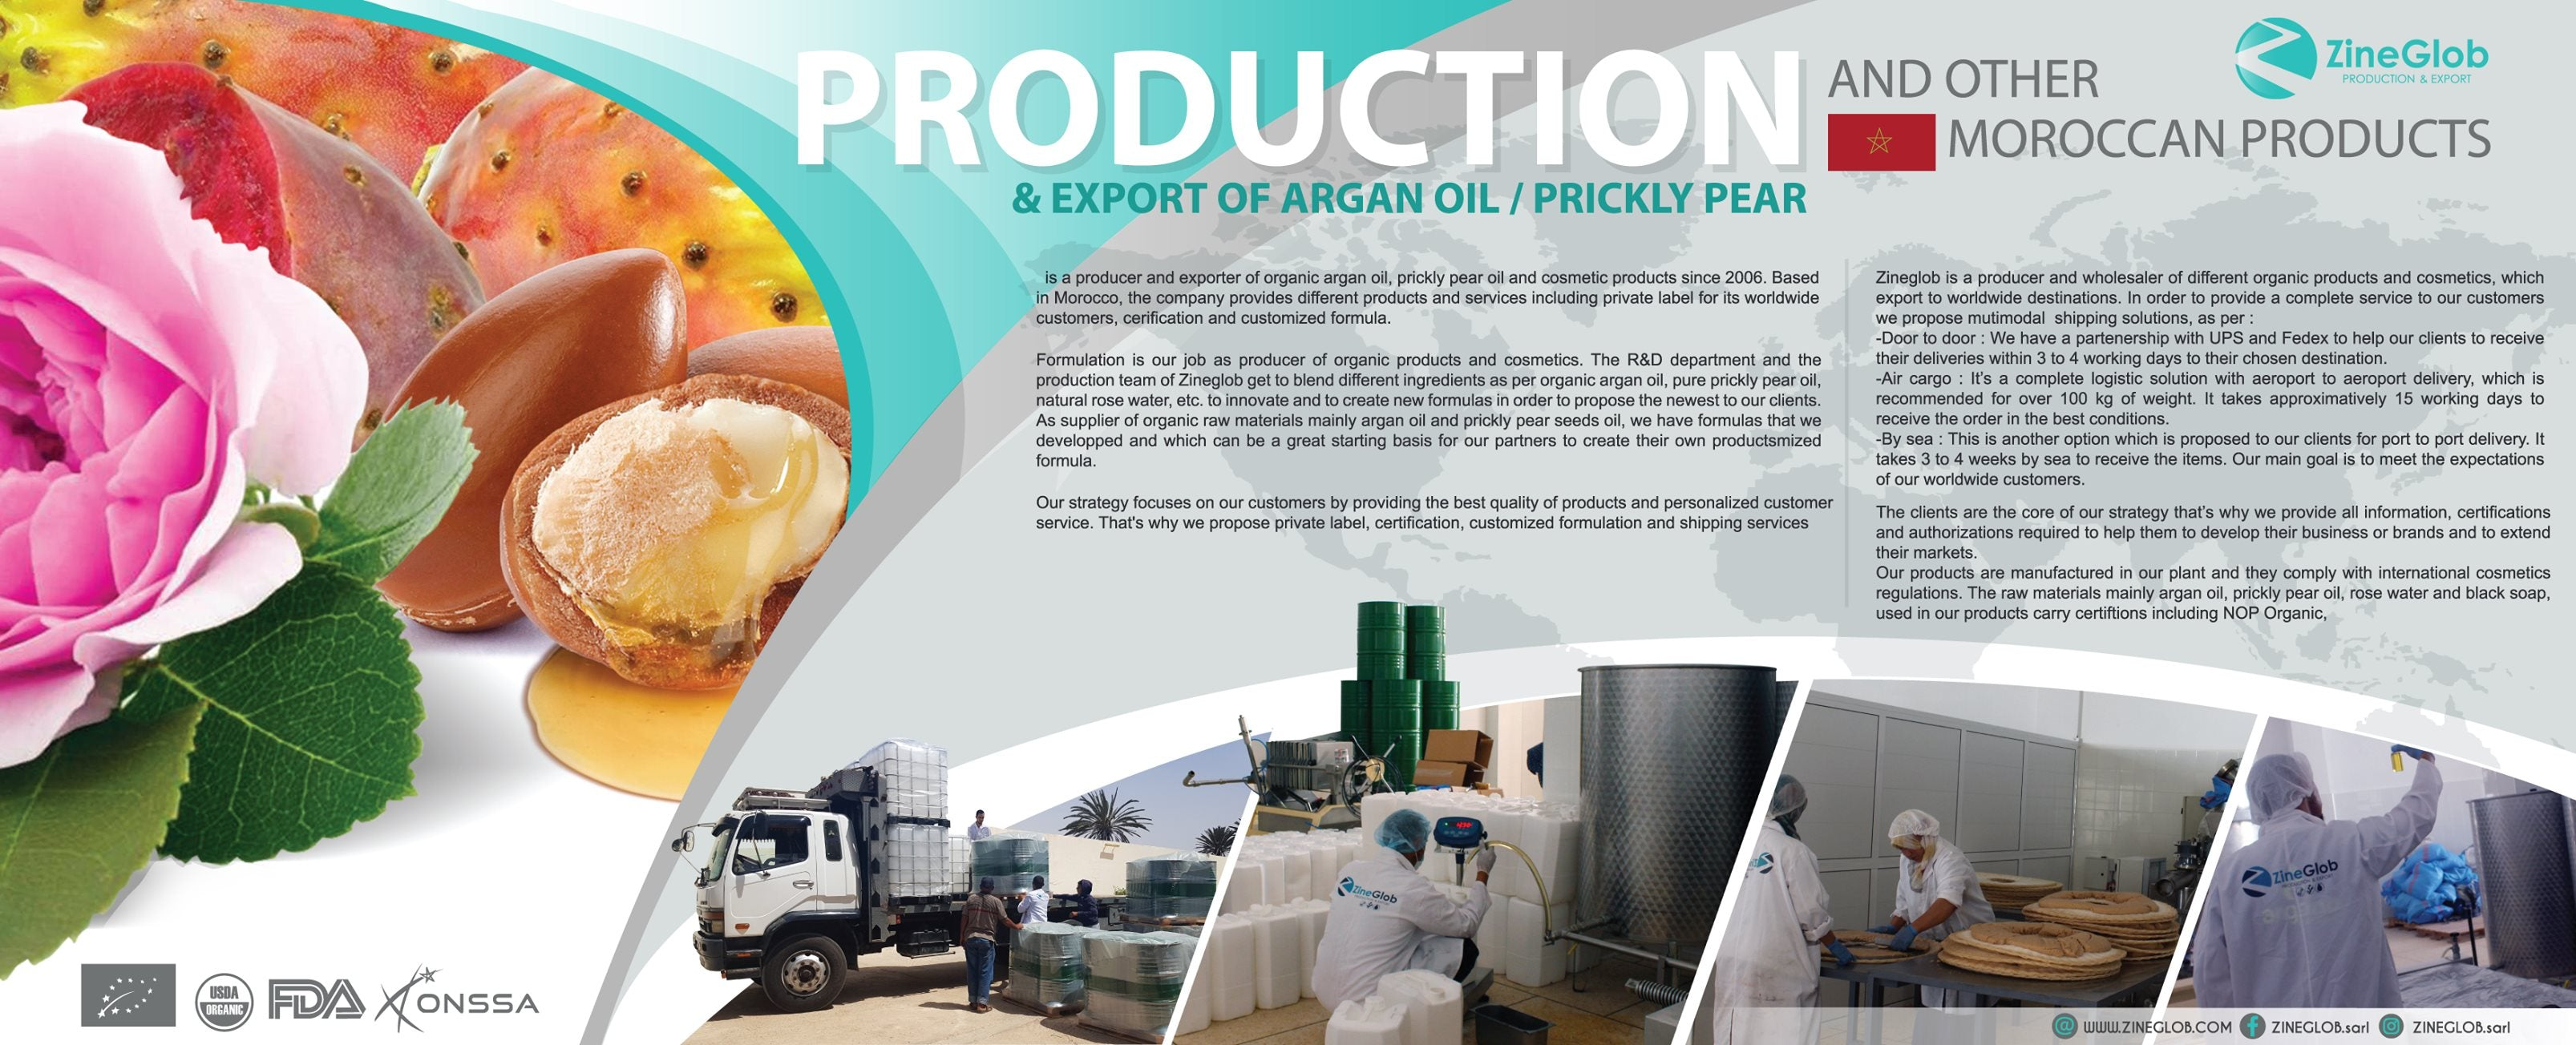 Moroccan argan oil producer